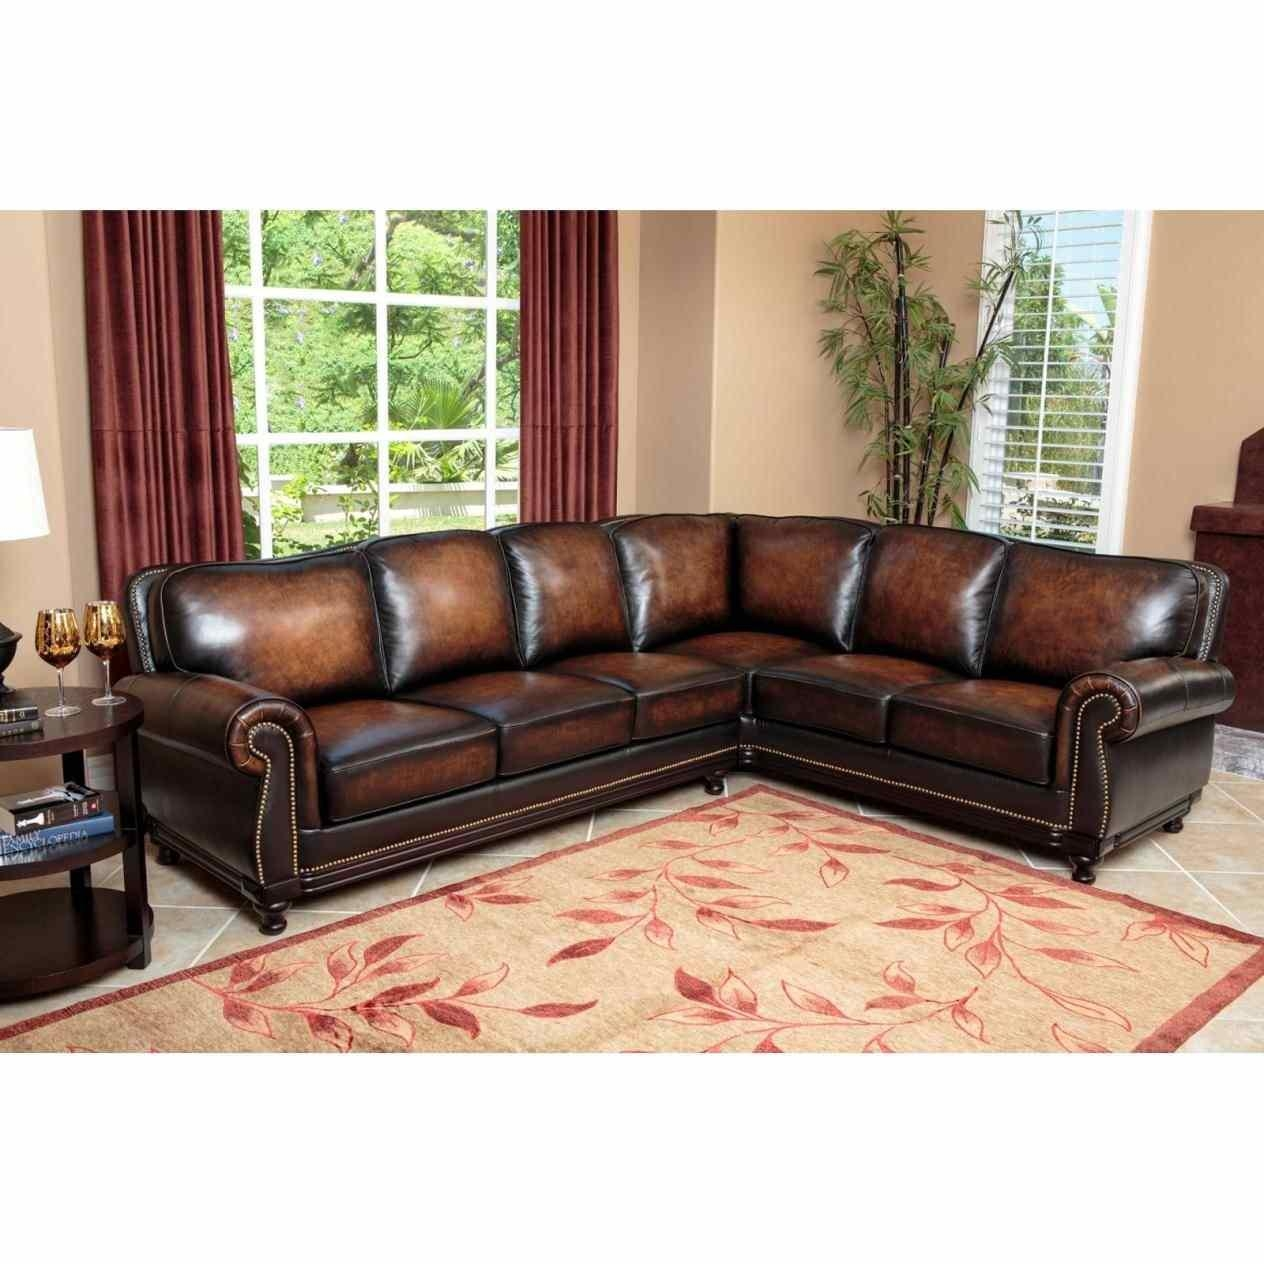 Brown Leather Sectional Sofas | Cathygirl Intended For Oval Sofas (Image 3 of 21)